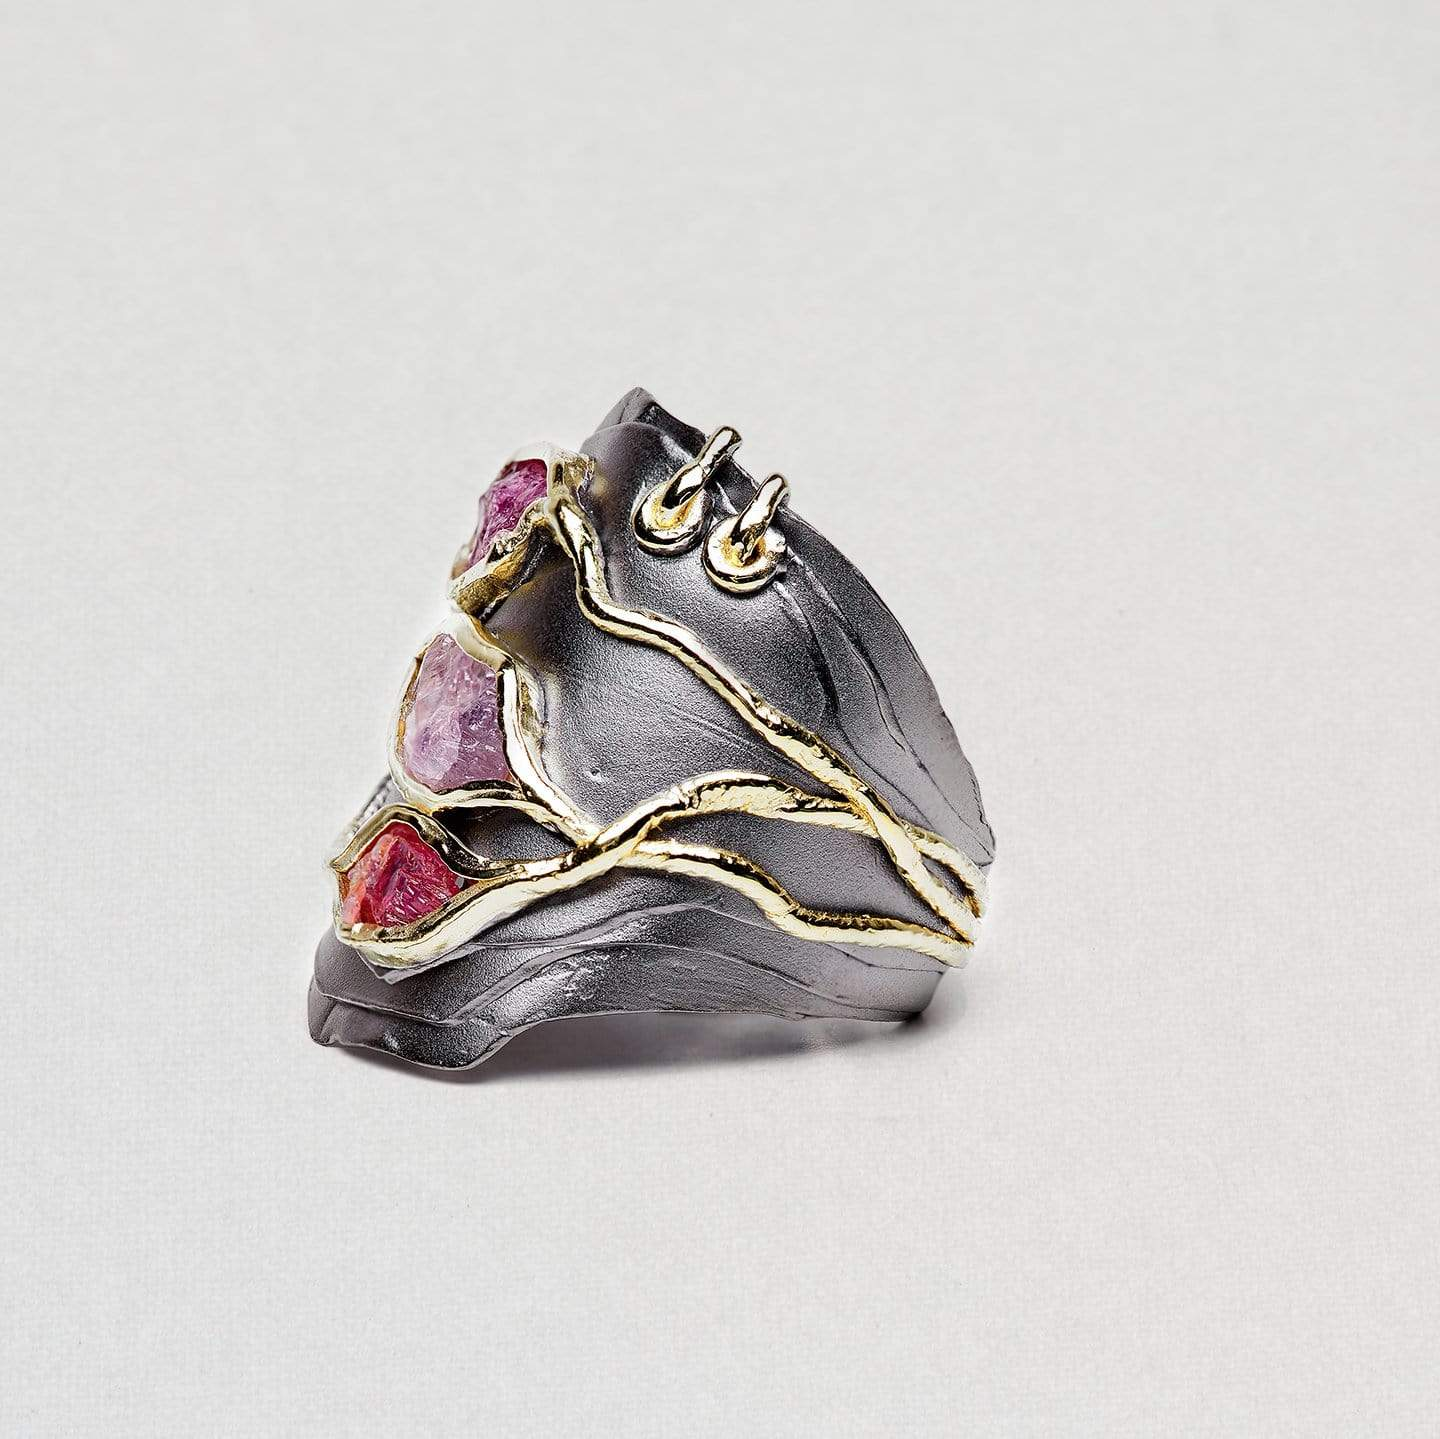 Cerelia Ring, Gold, gray, Handmade, Rhodium, Ruby, spo-disabled, StoneColor:PinkRuby, Style:Everyday, Type:StoneCandyWired Ring